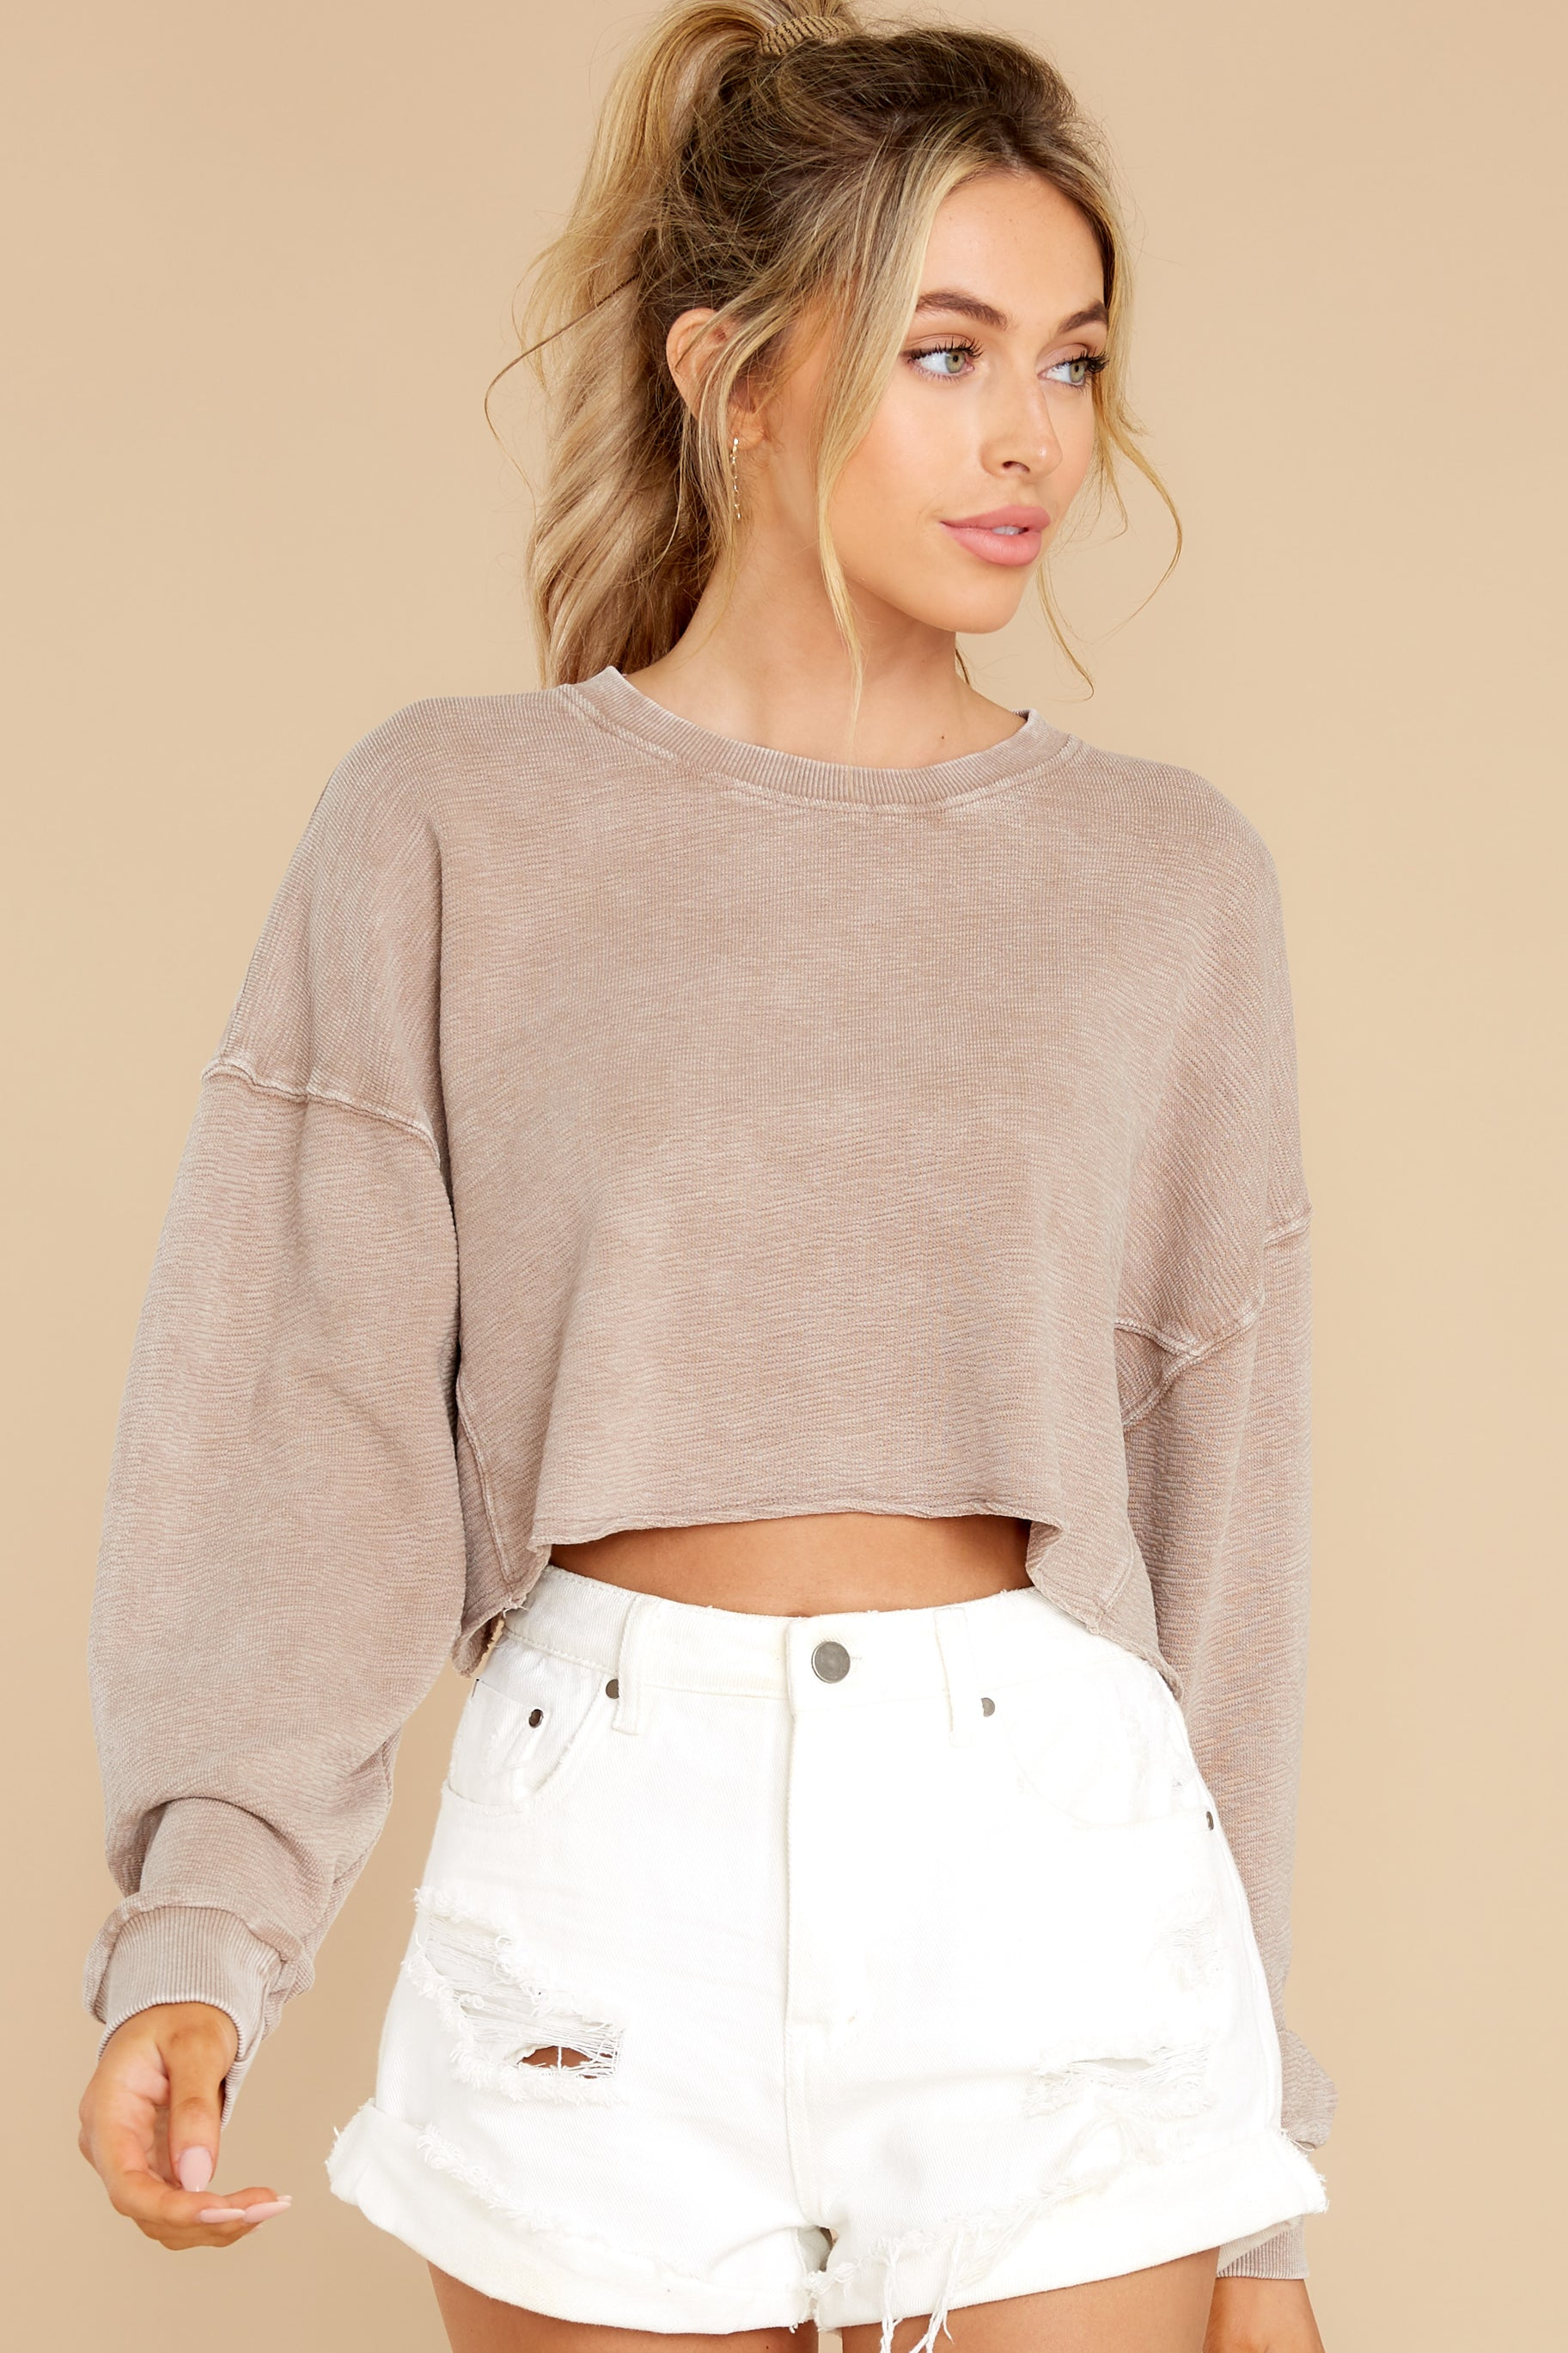 7 Anywhere With You Latte Crop Sweatshirt at reddress.com